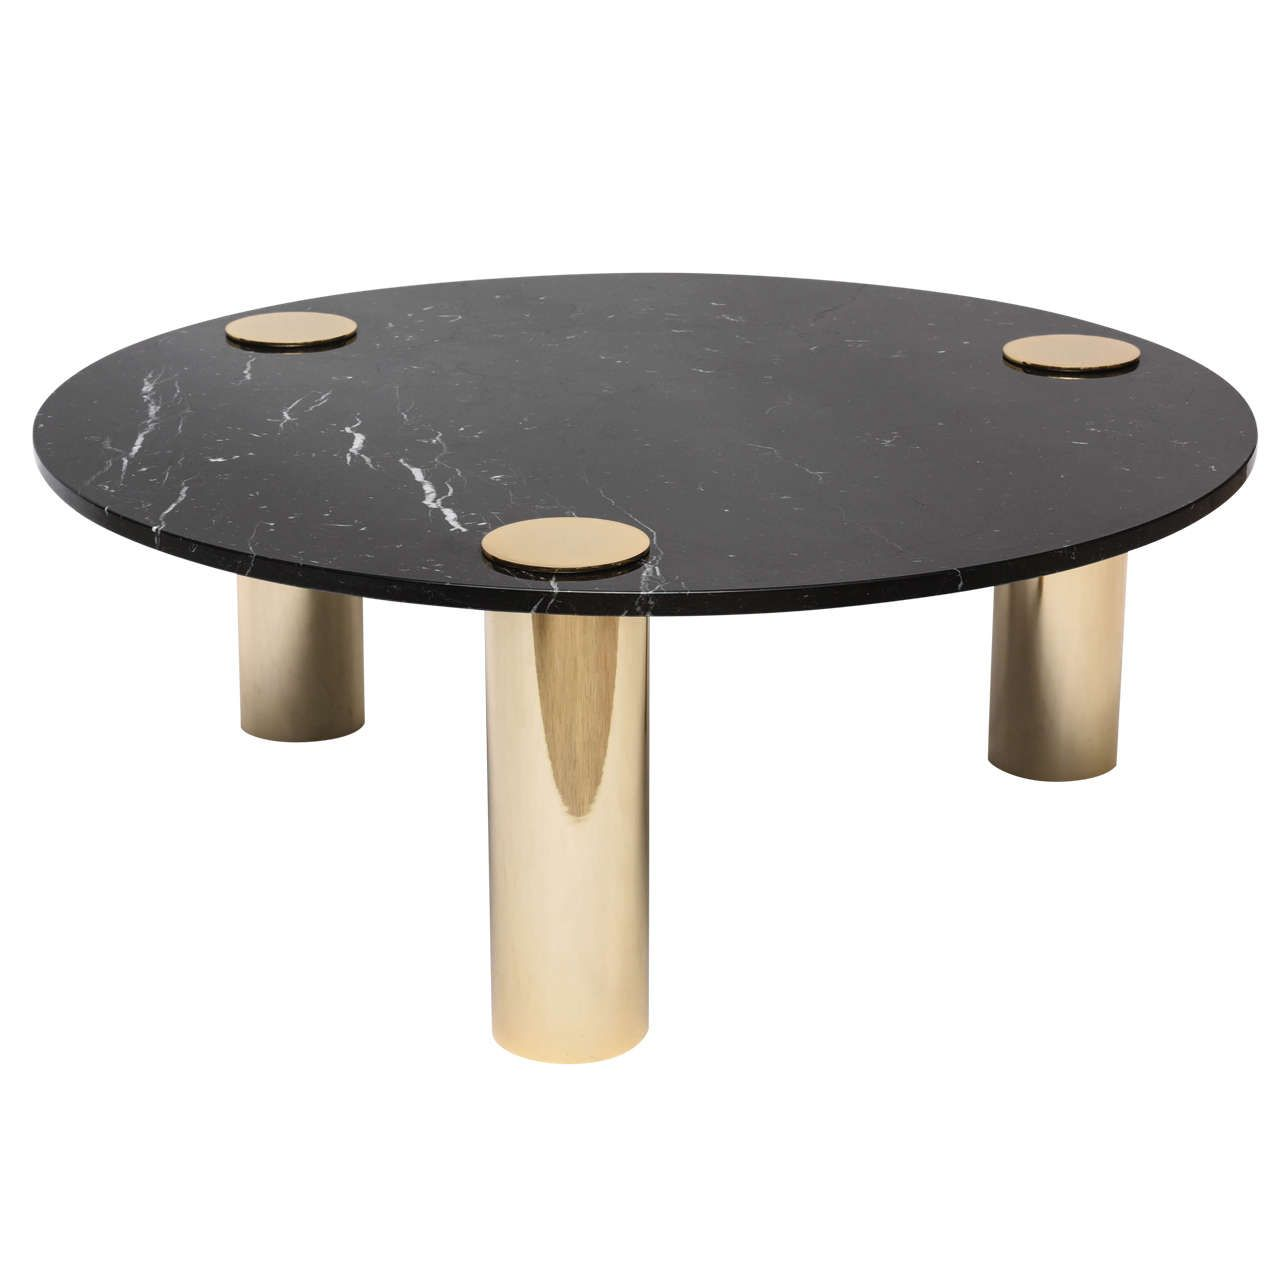 1970s Pace Style Brass And Black Marble Coffee Table In 2020 Antique Coffee Tables Marble Coffee Table Black Marble Coffee Table